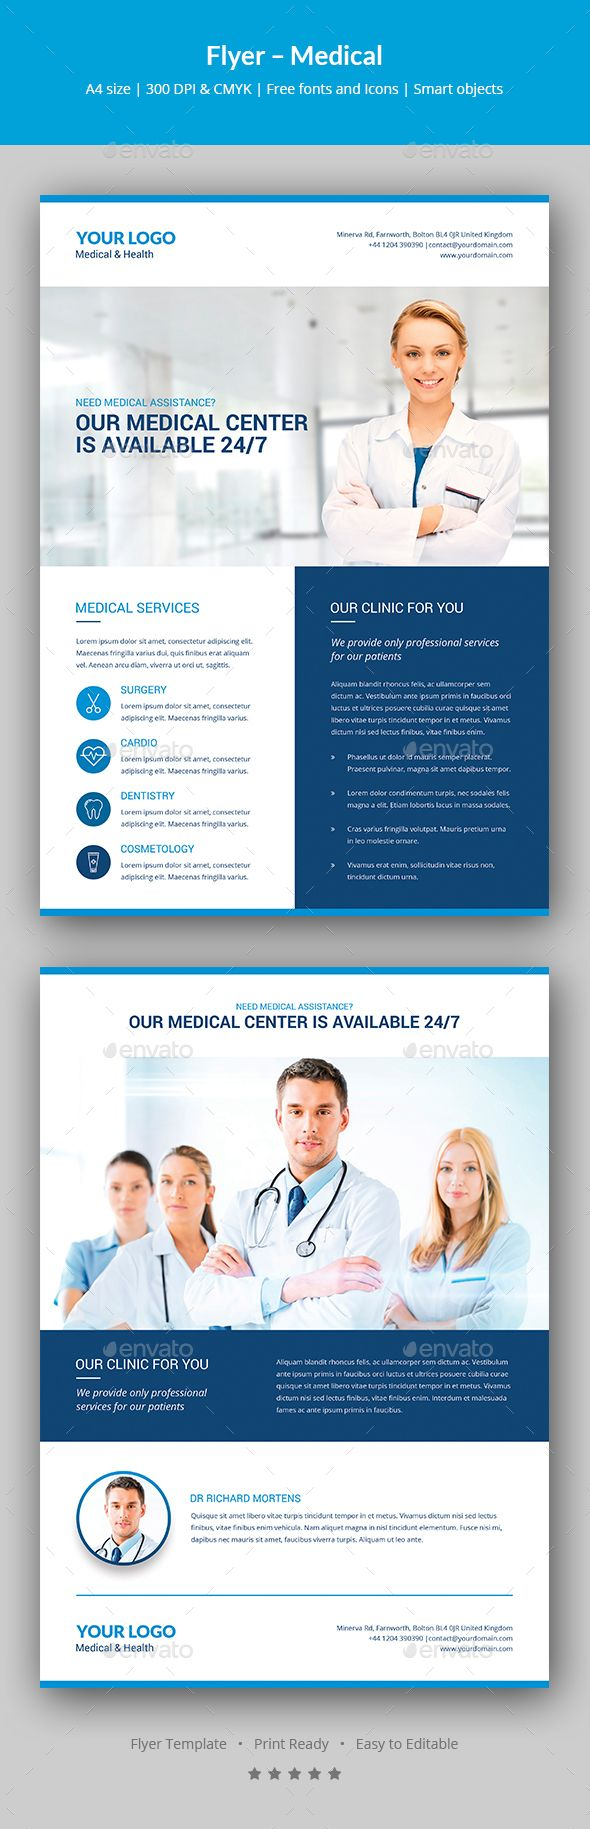 Flyer Medical Medical Flyer Template And Template